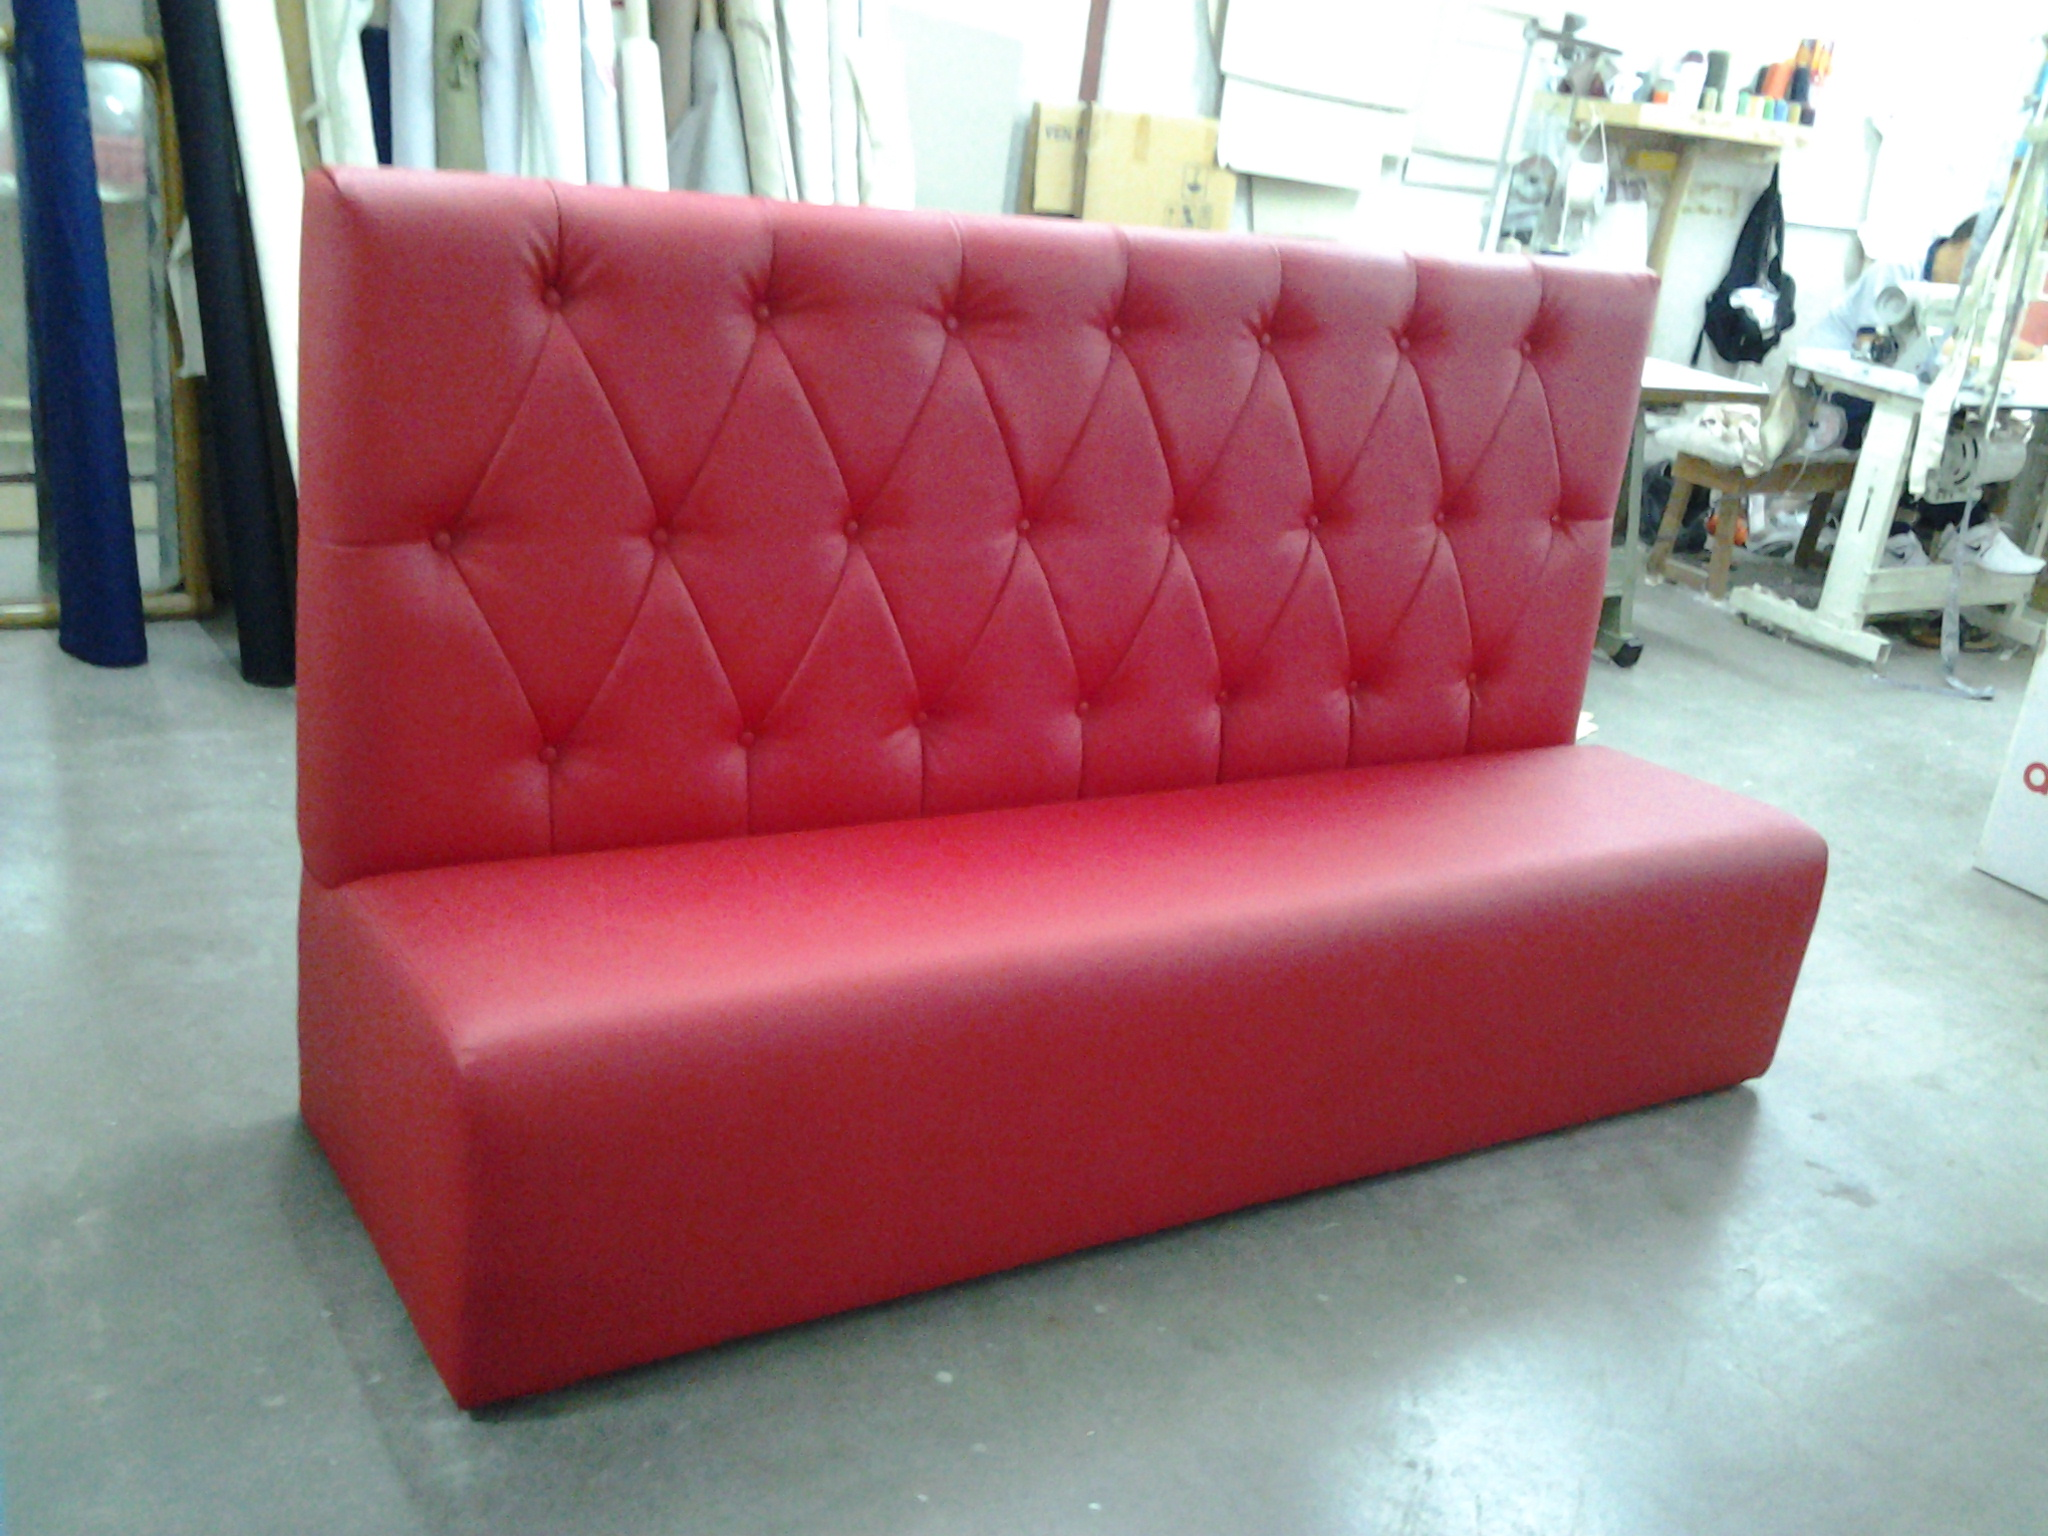 Everest Furniture Factory Dubai Curtains Upholstery Sofas